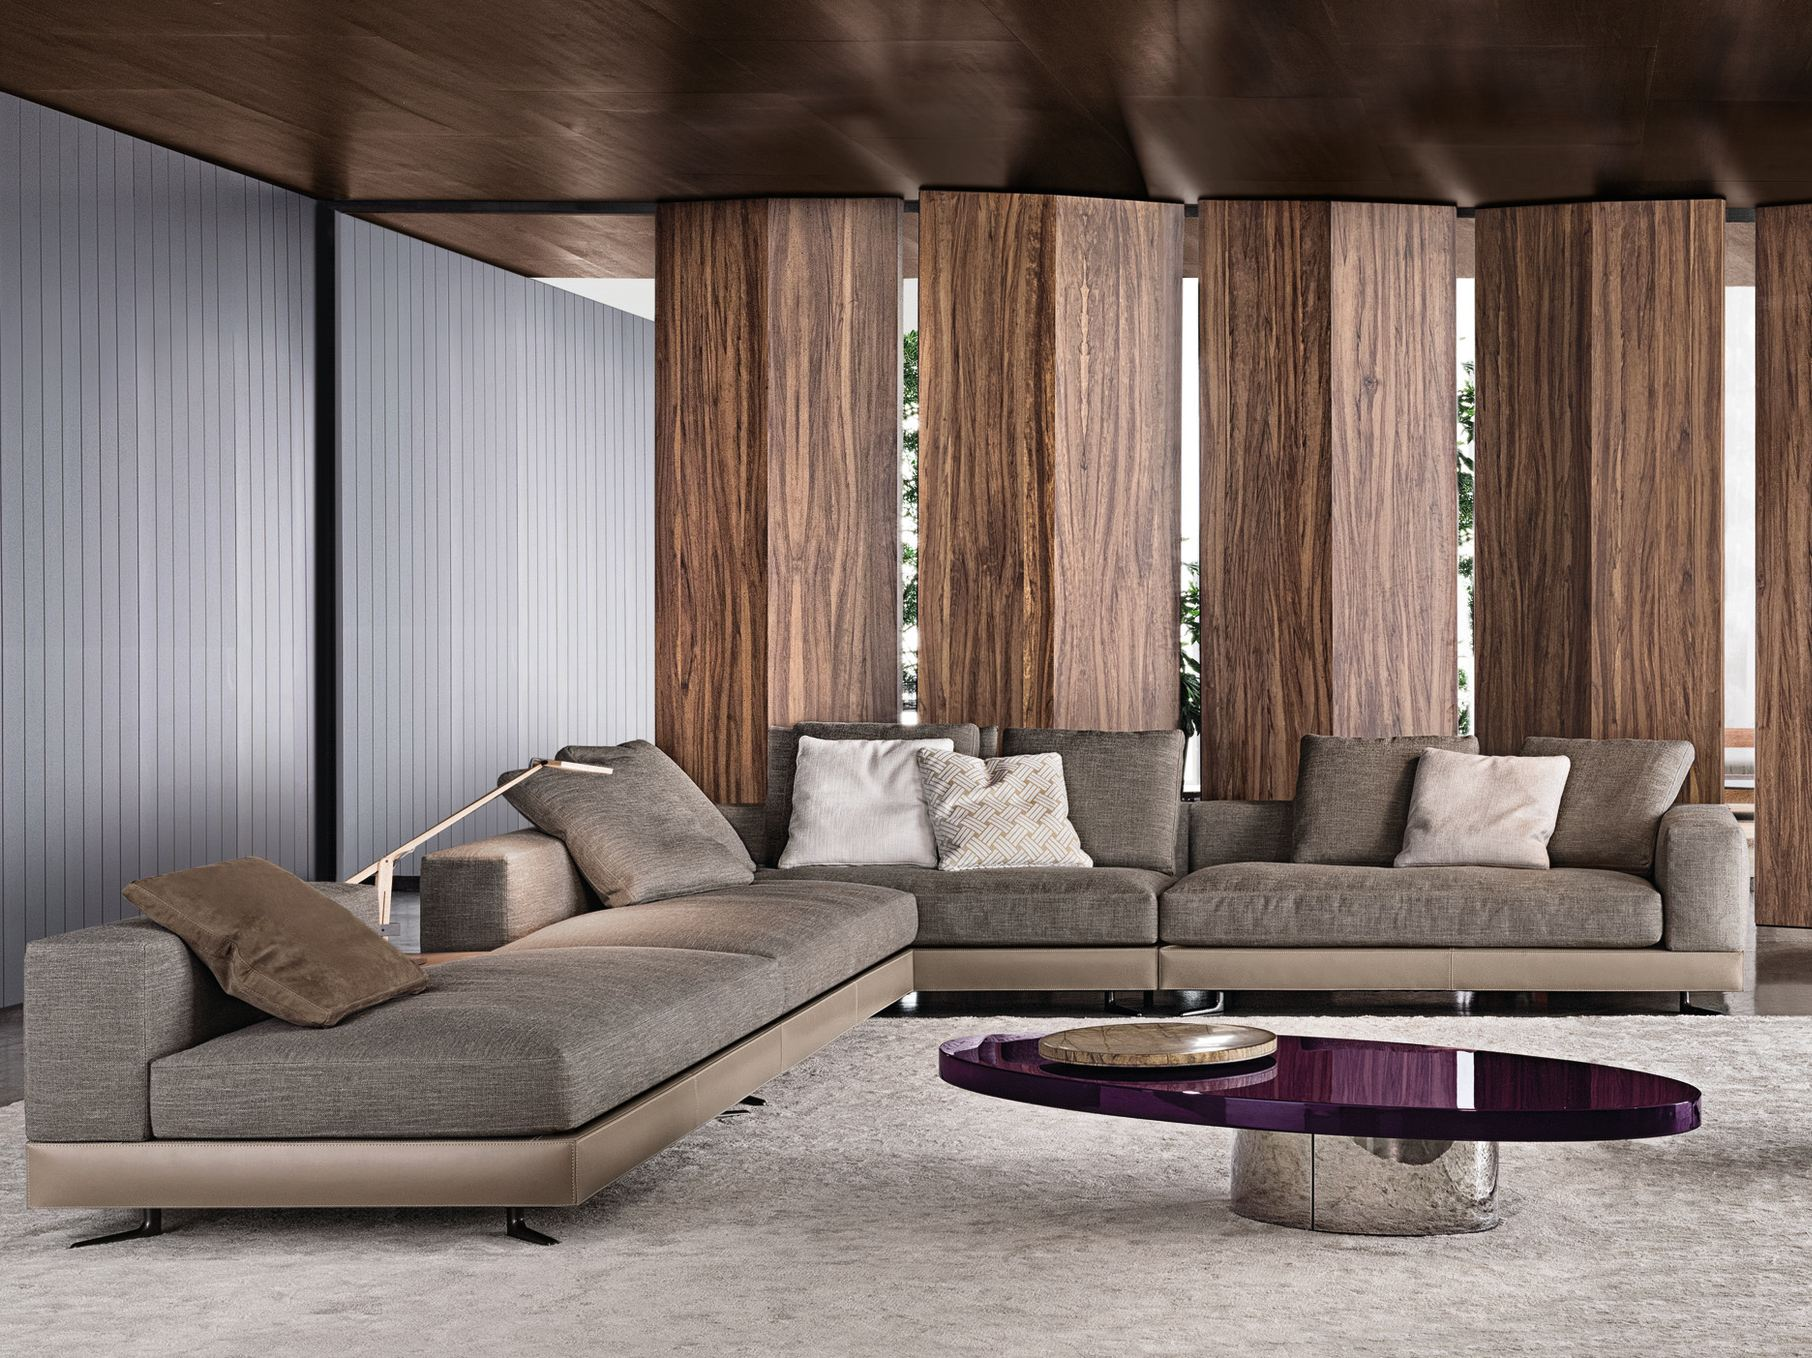 Tremendous White Seating System By Rodolfo Dordoni For Minotti Caraccident5 Cool Chair Designs And Ideas Caraccident5Info